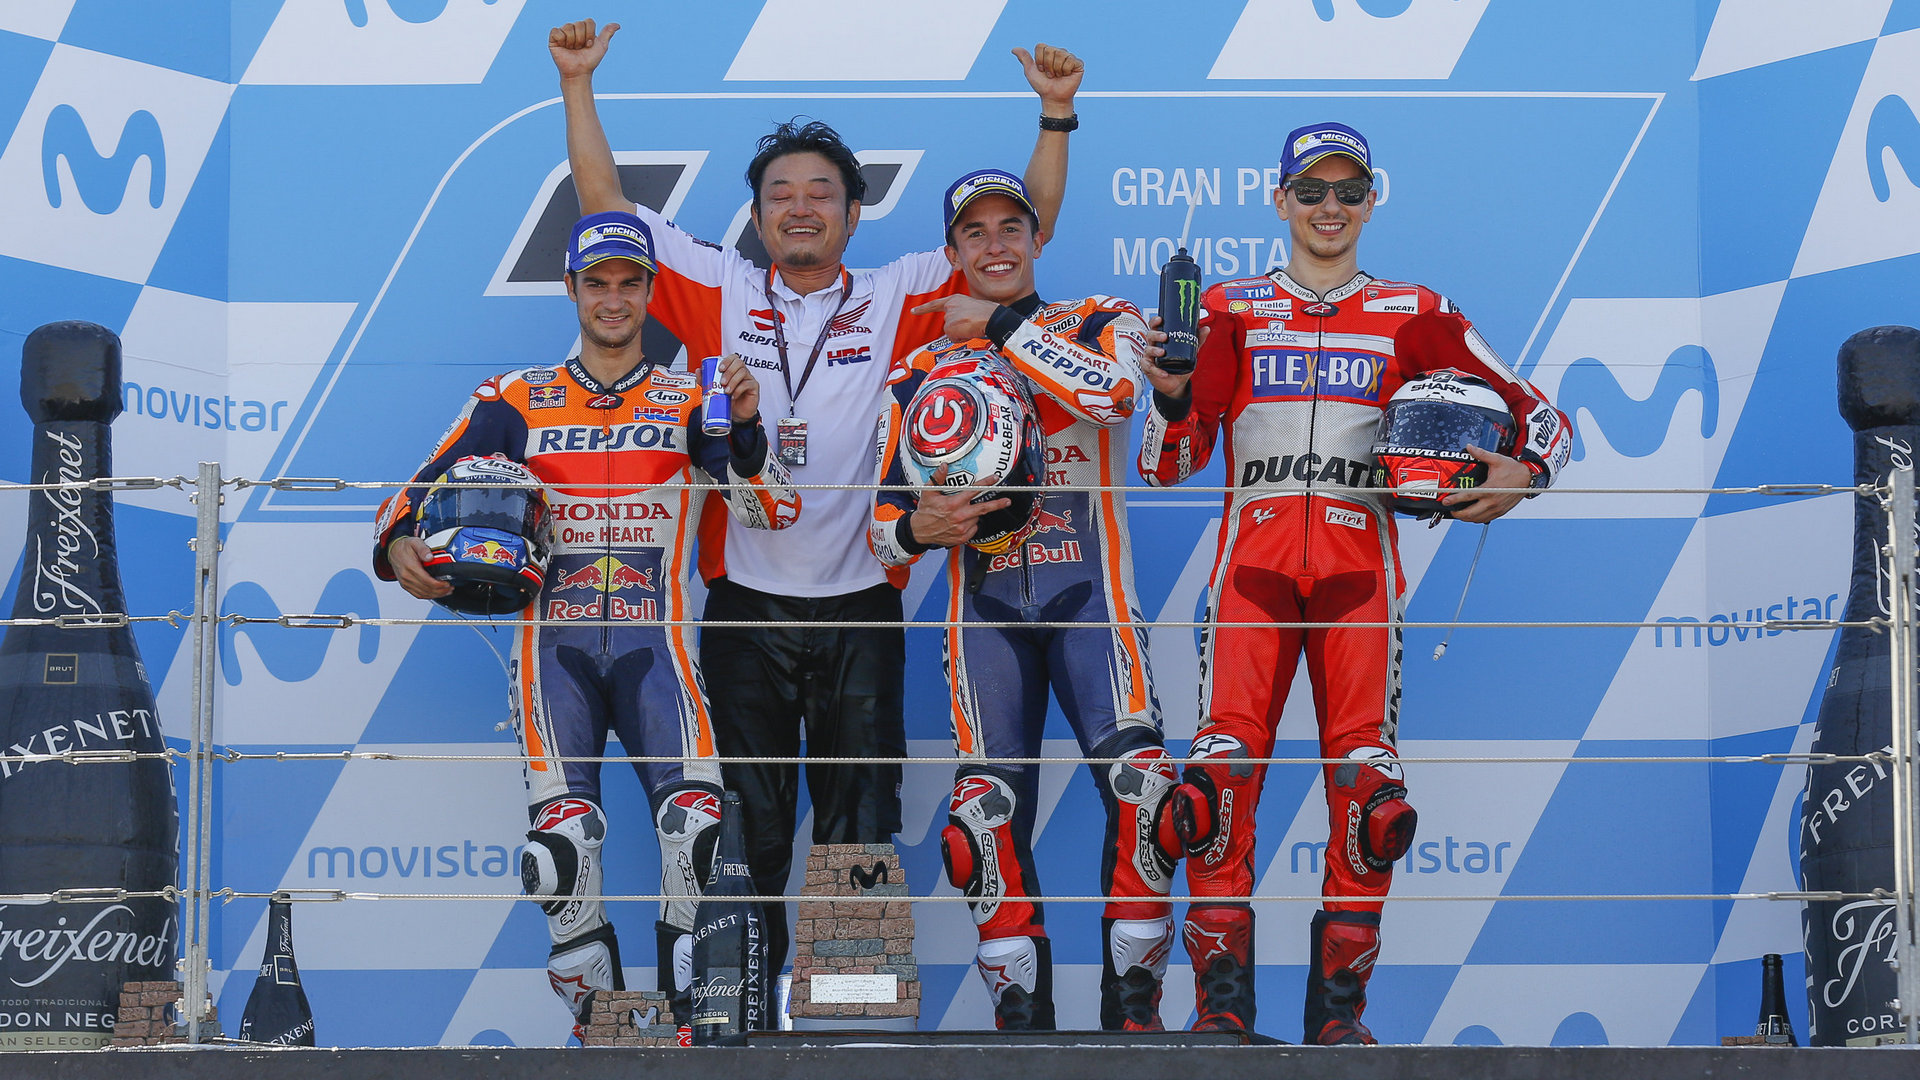 MotoGP: Fifth win of the year for Marquez as Rossi takes top five despite injury in Aragon